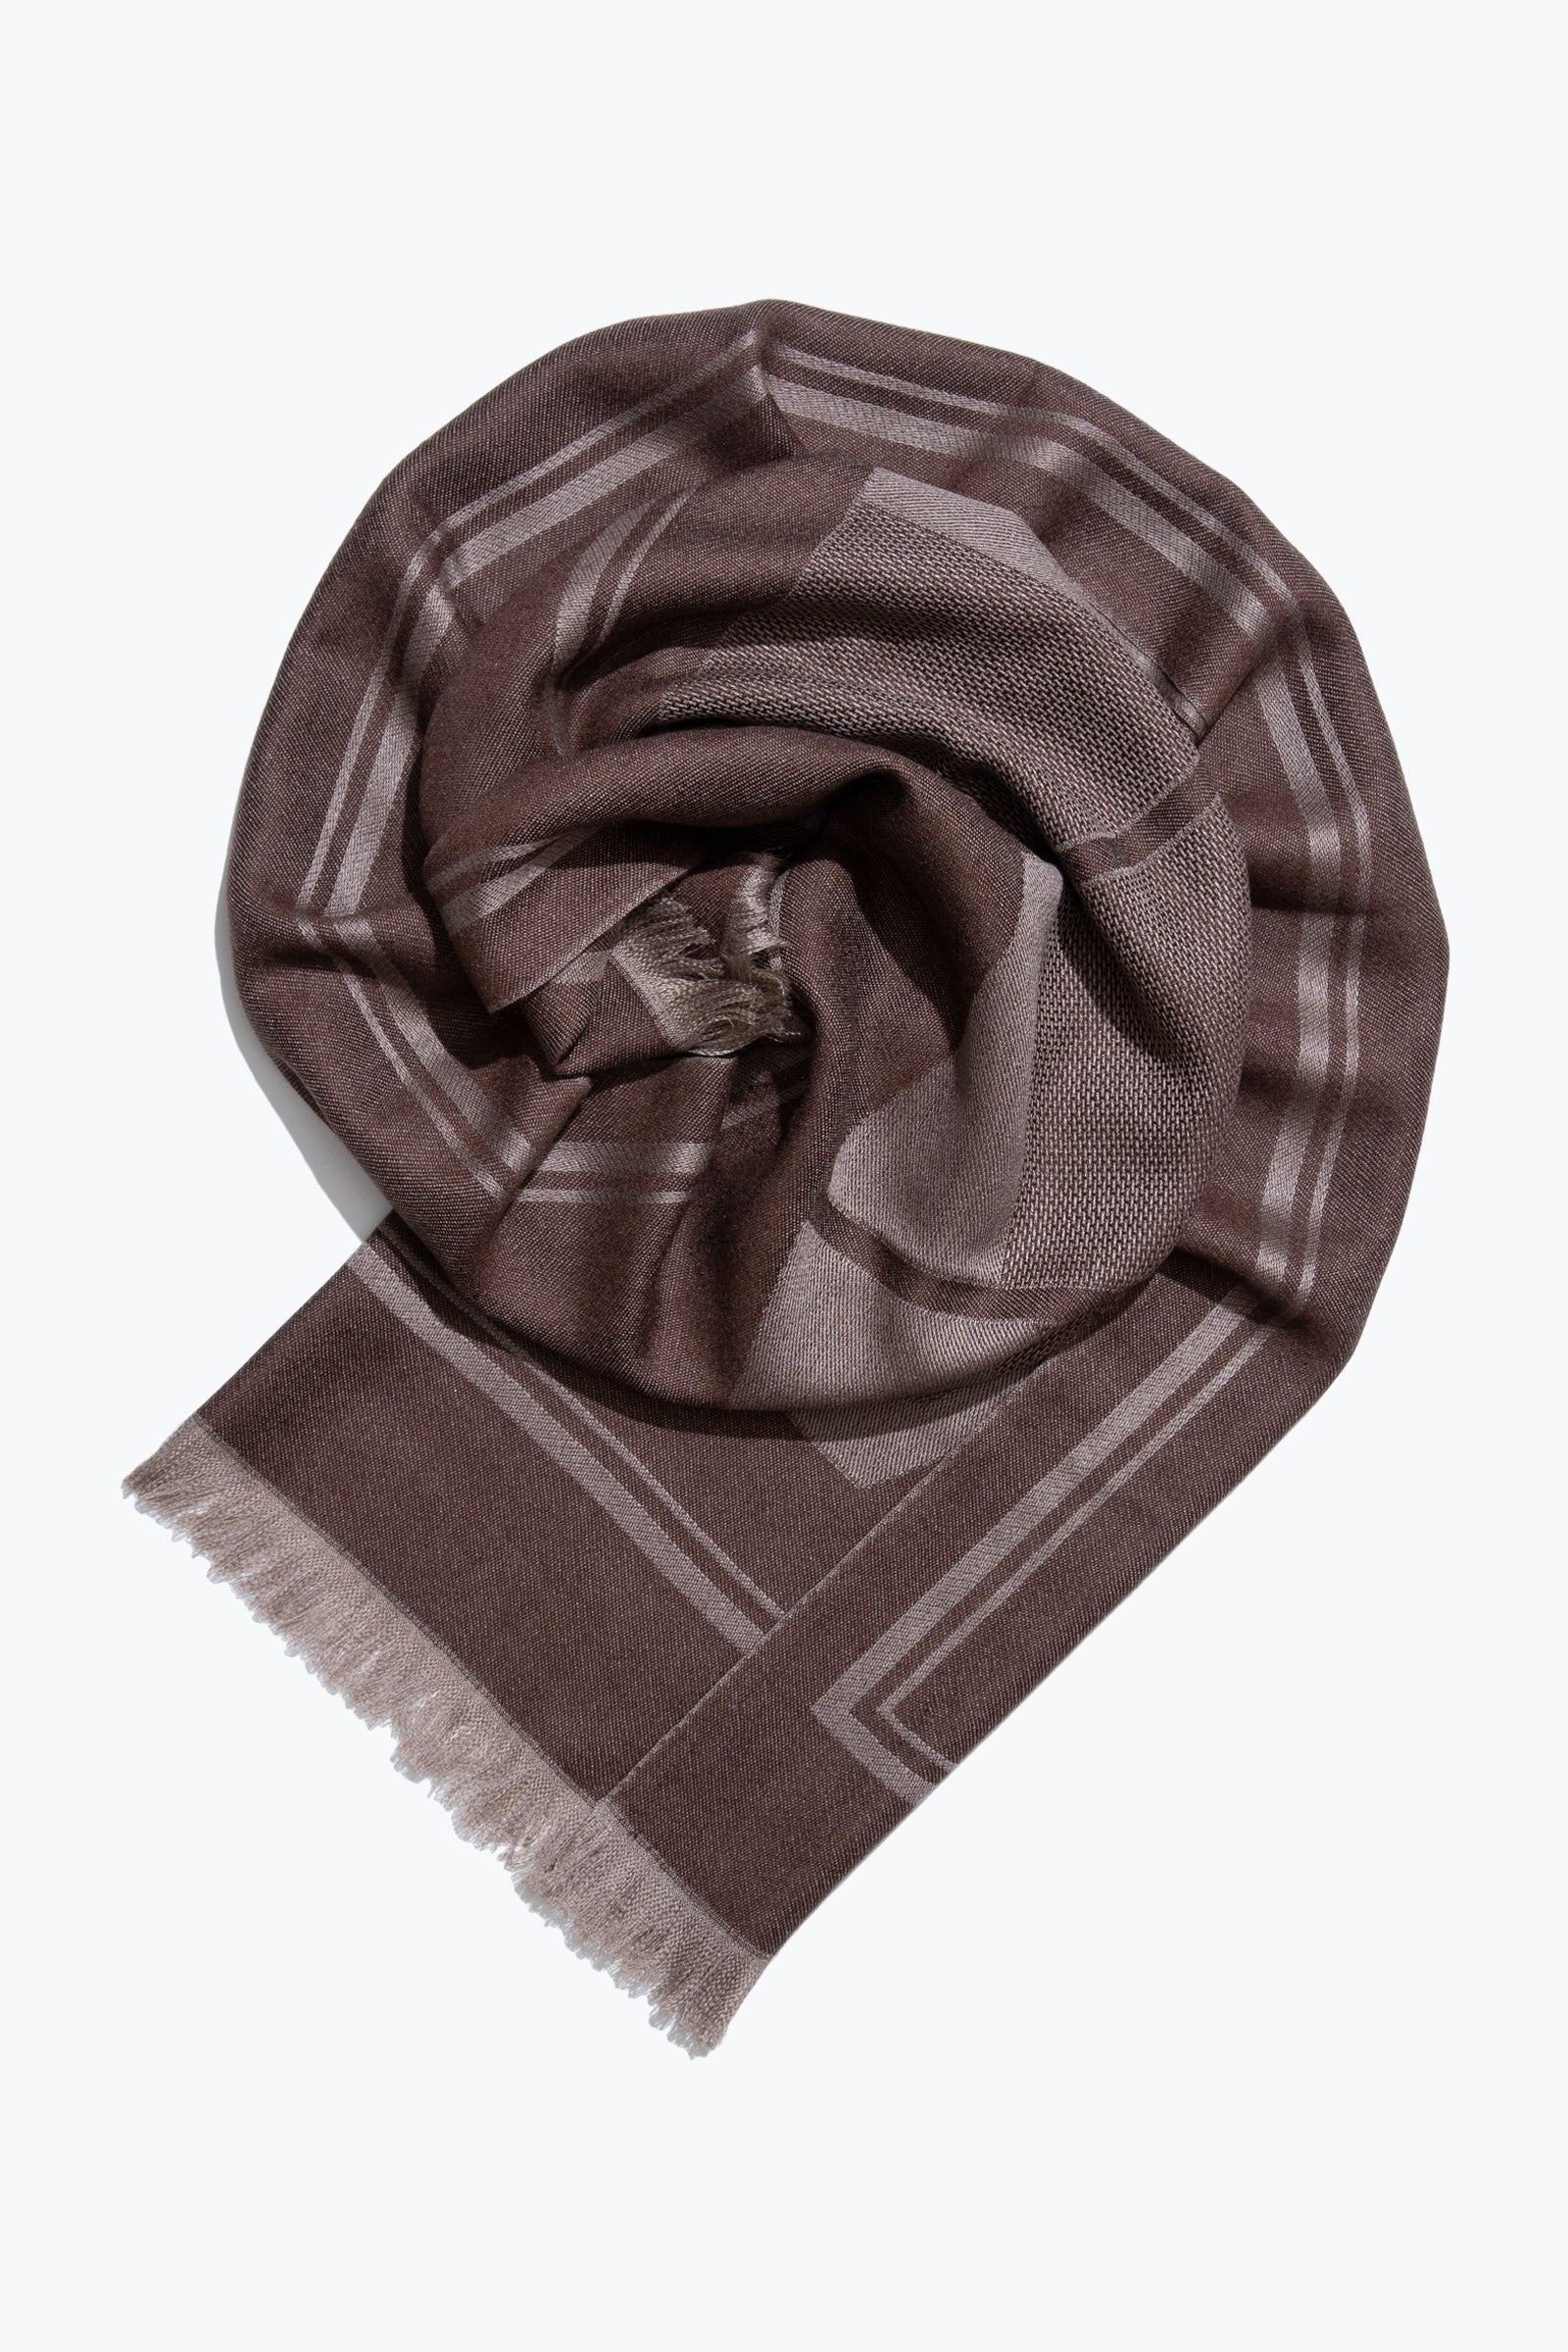 woven large scarf - patchwork sculpture (chocolate)